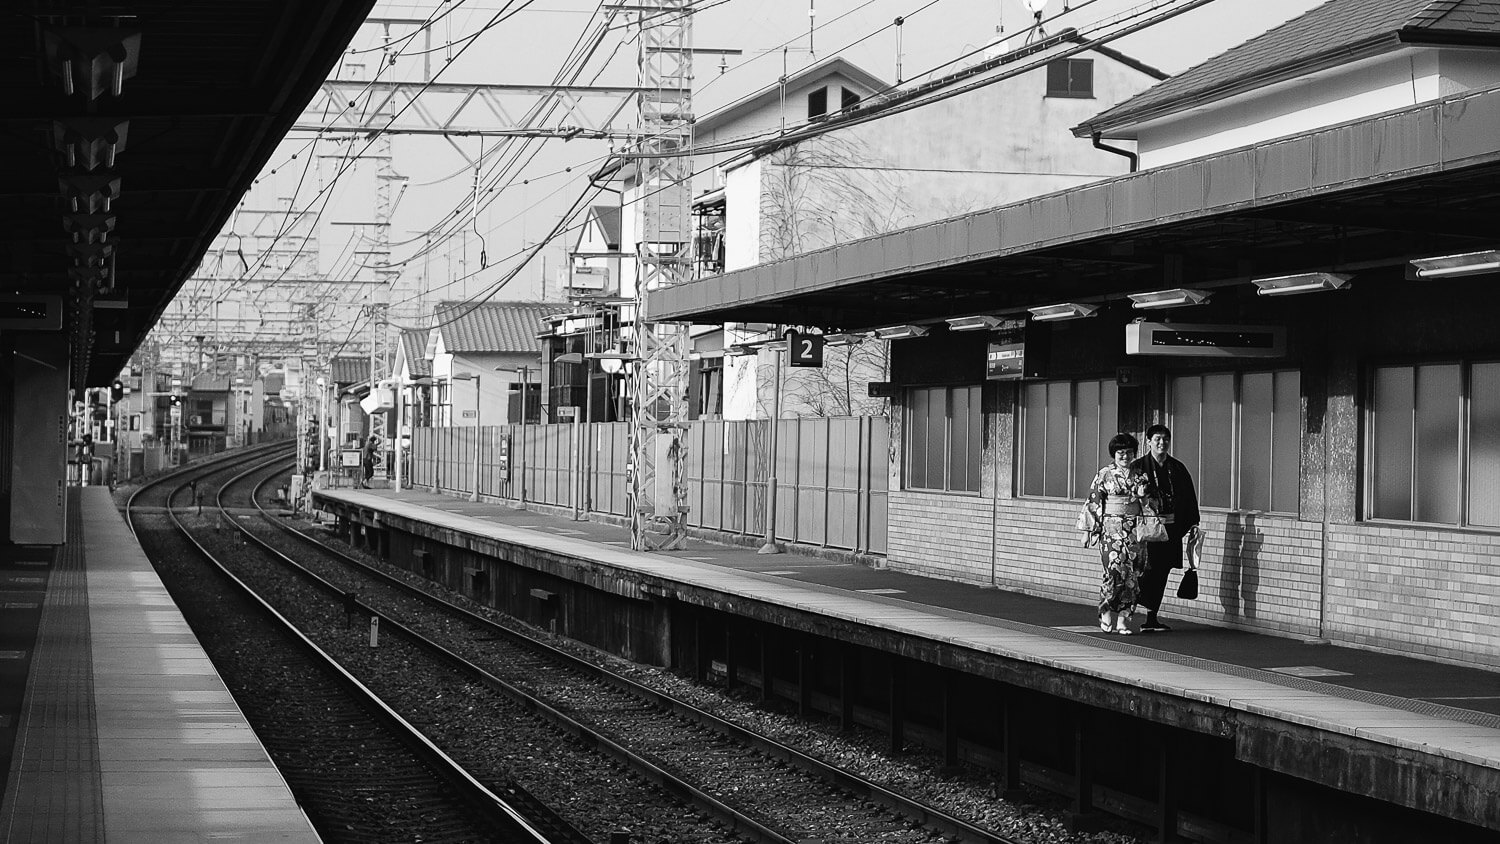 """A Japanese couple waiting for their train in Nara. Travel photography and guide by © Natasha Lequepeys for """"And Then I Met Yoko"""". #japan #japanitinerary #tokyo #osaka #travelblog #travelphotography #landscapephotography #travelitinerary #fujifilm #kyoto #nara #oaska #travelguide #asia #foodphotography #japantravel #japanfood #ryokan #cherryblossom #springtravel"""